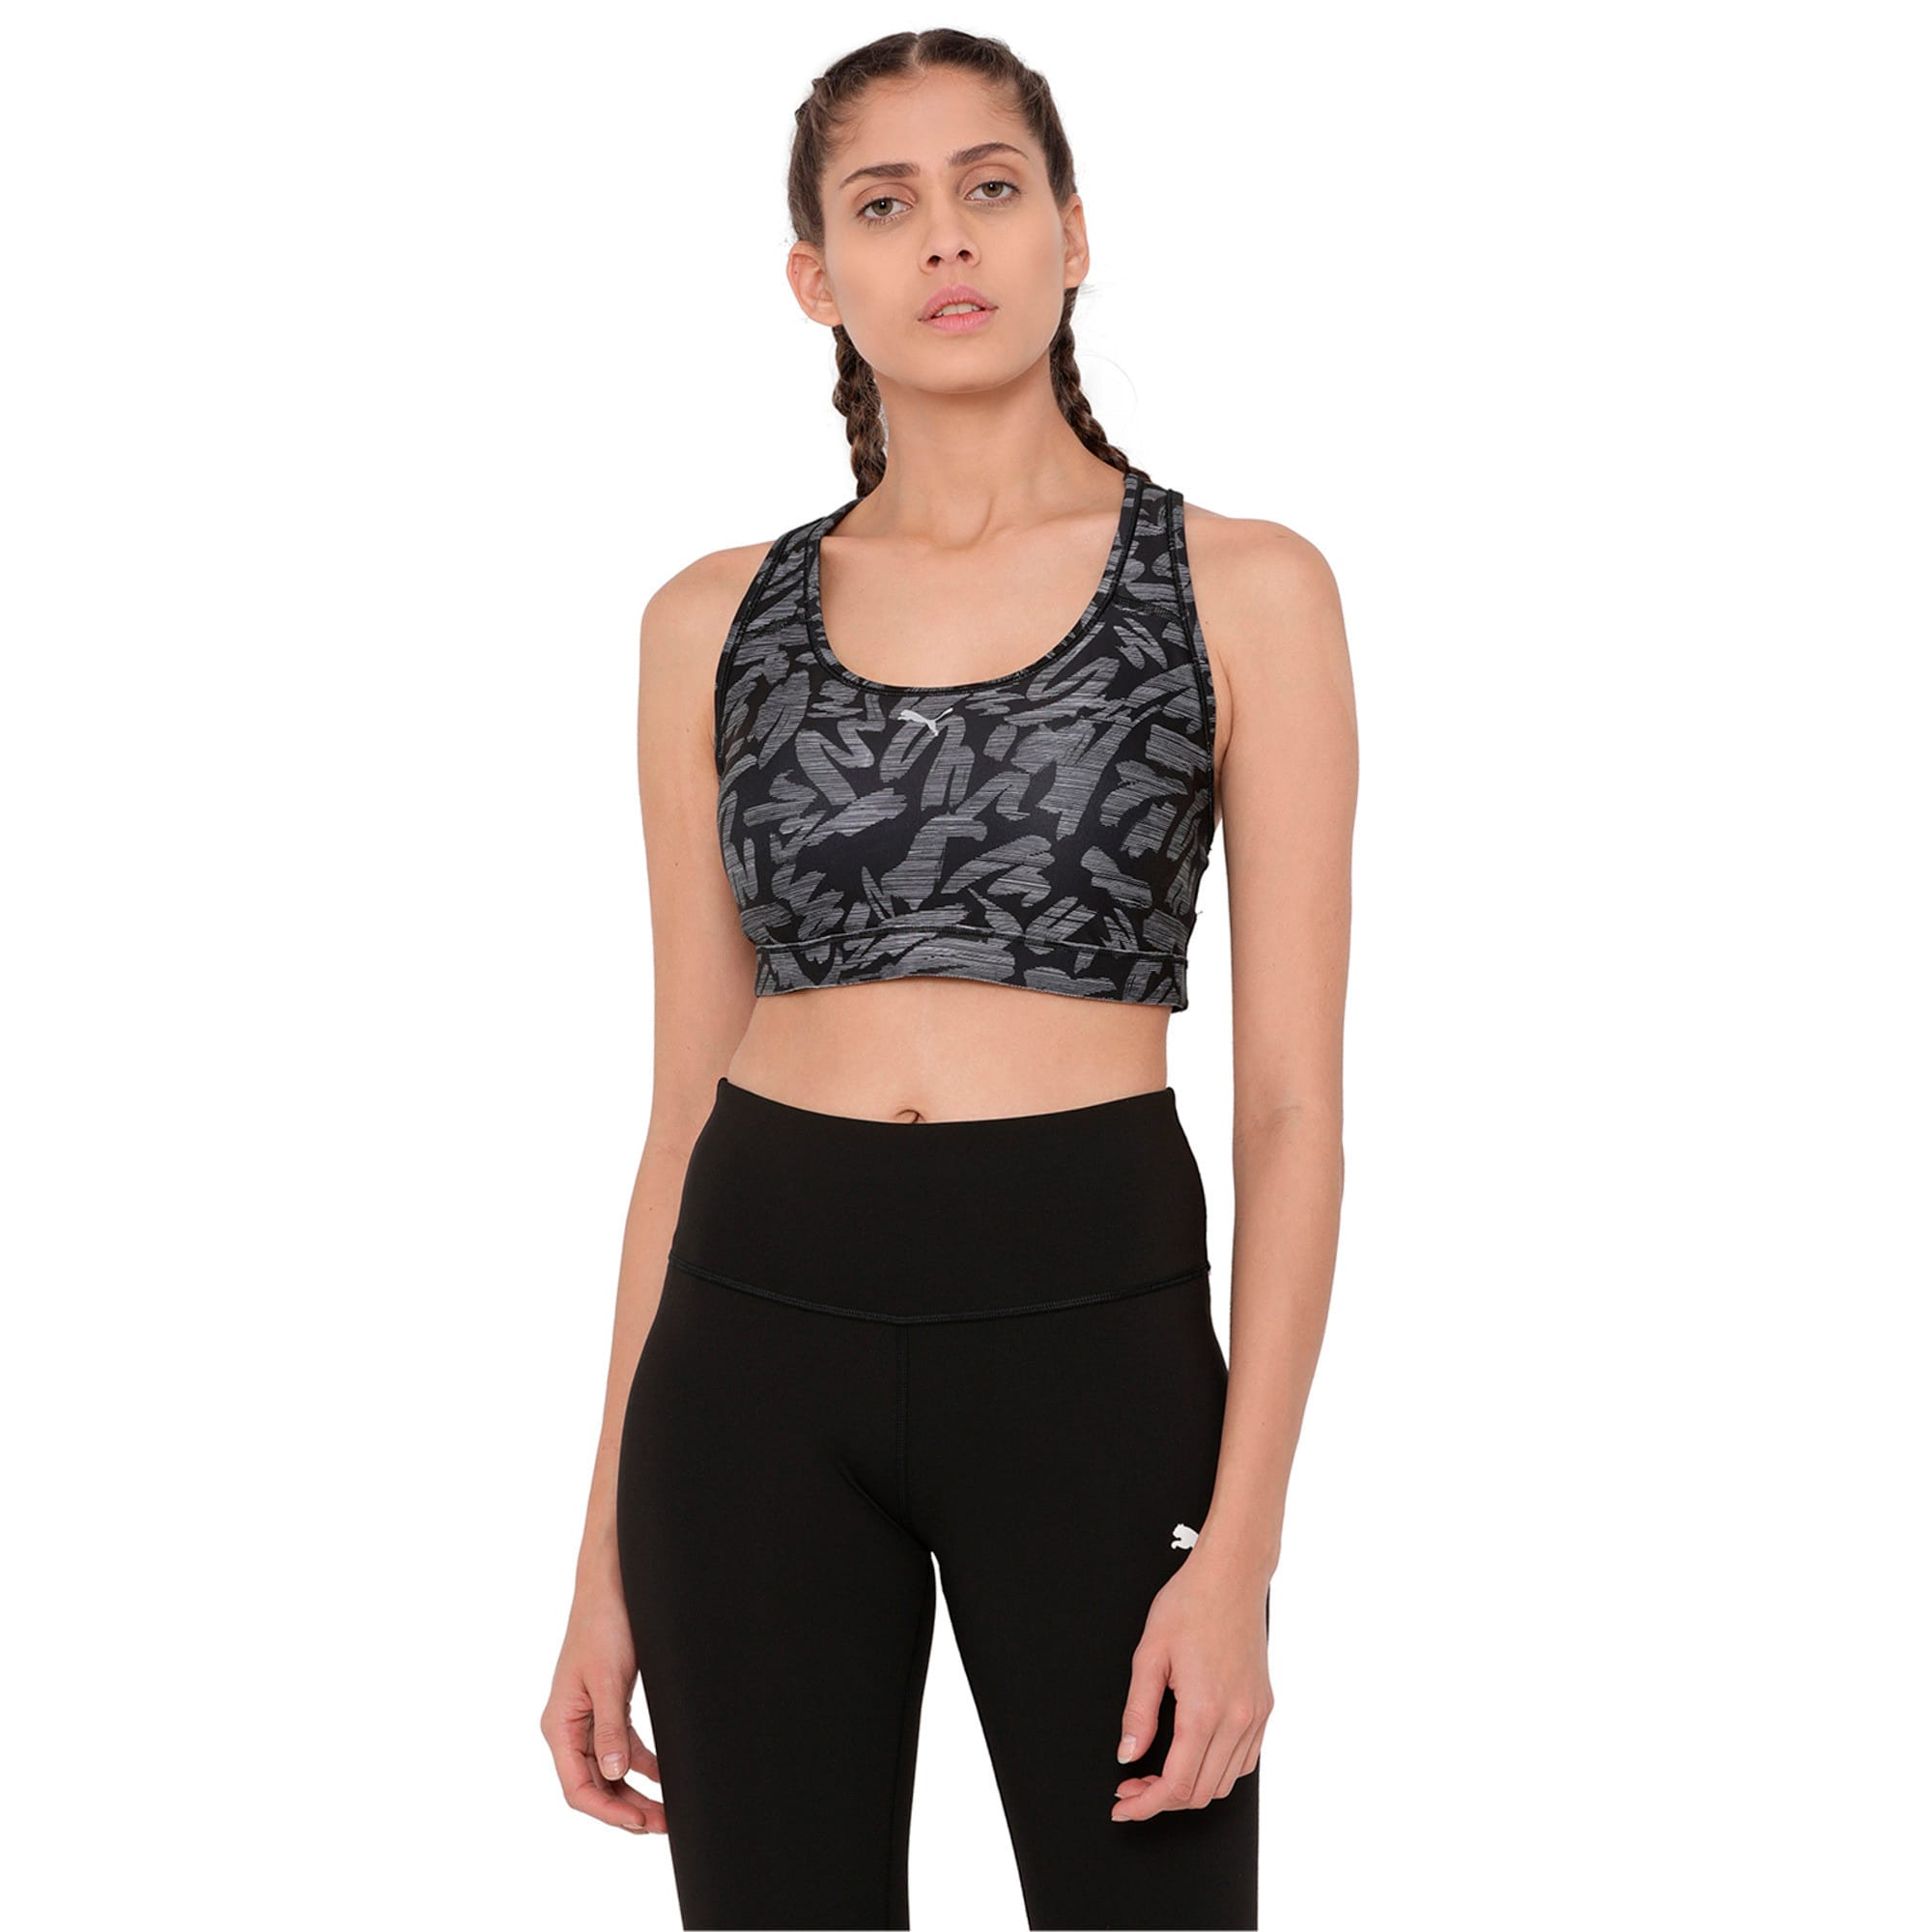 Thumbnail 1 of Training Women's PWRSHAPE Forever Graphic Padded Crop Top, Puma Black-oceanaire prt, medium-IND